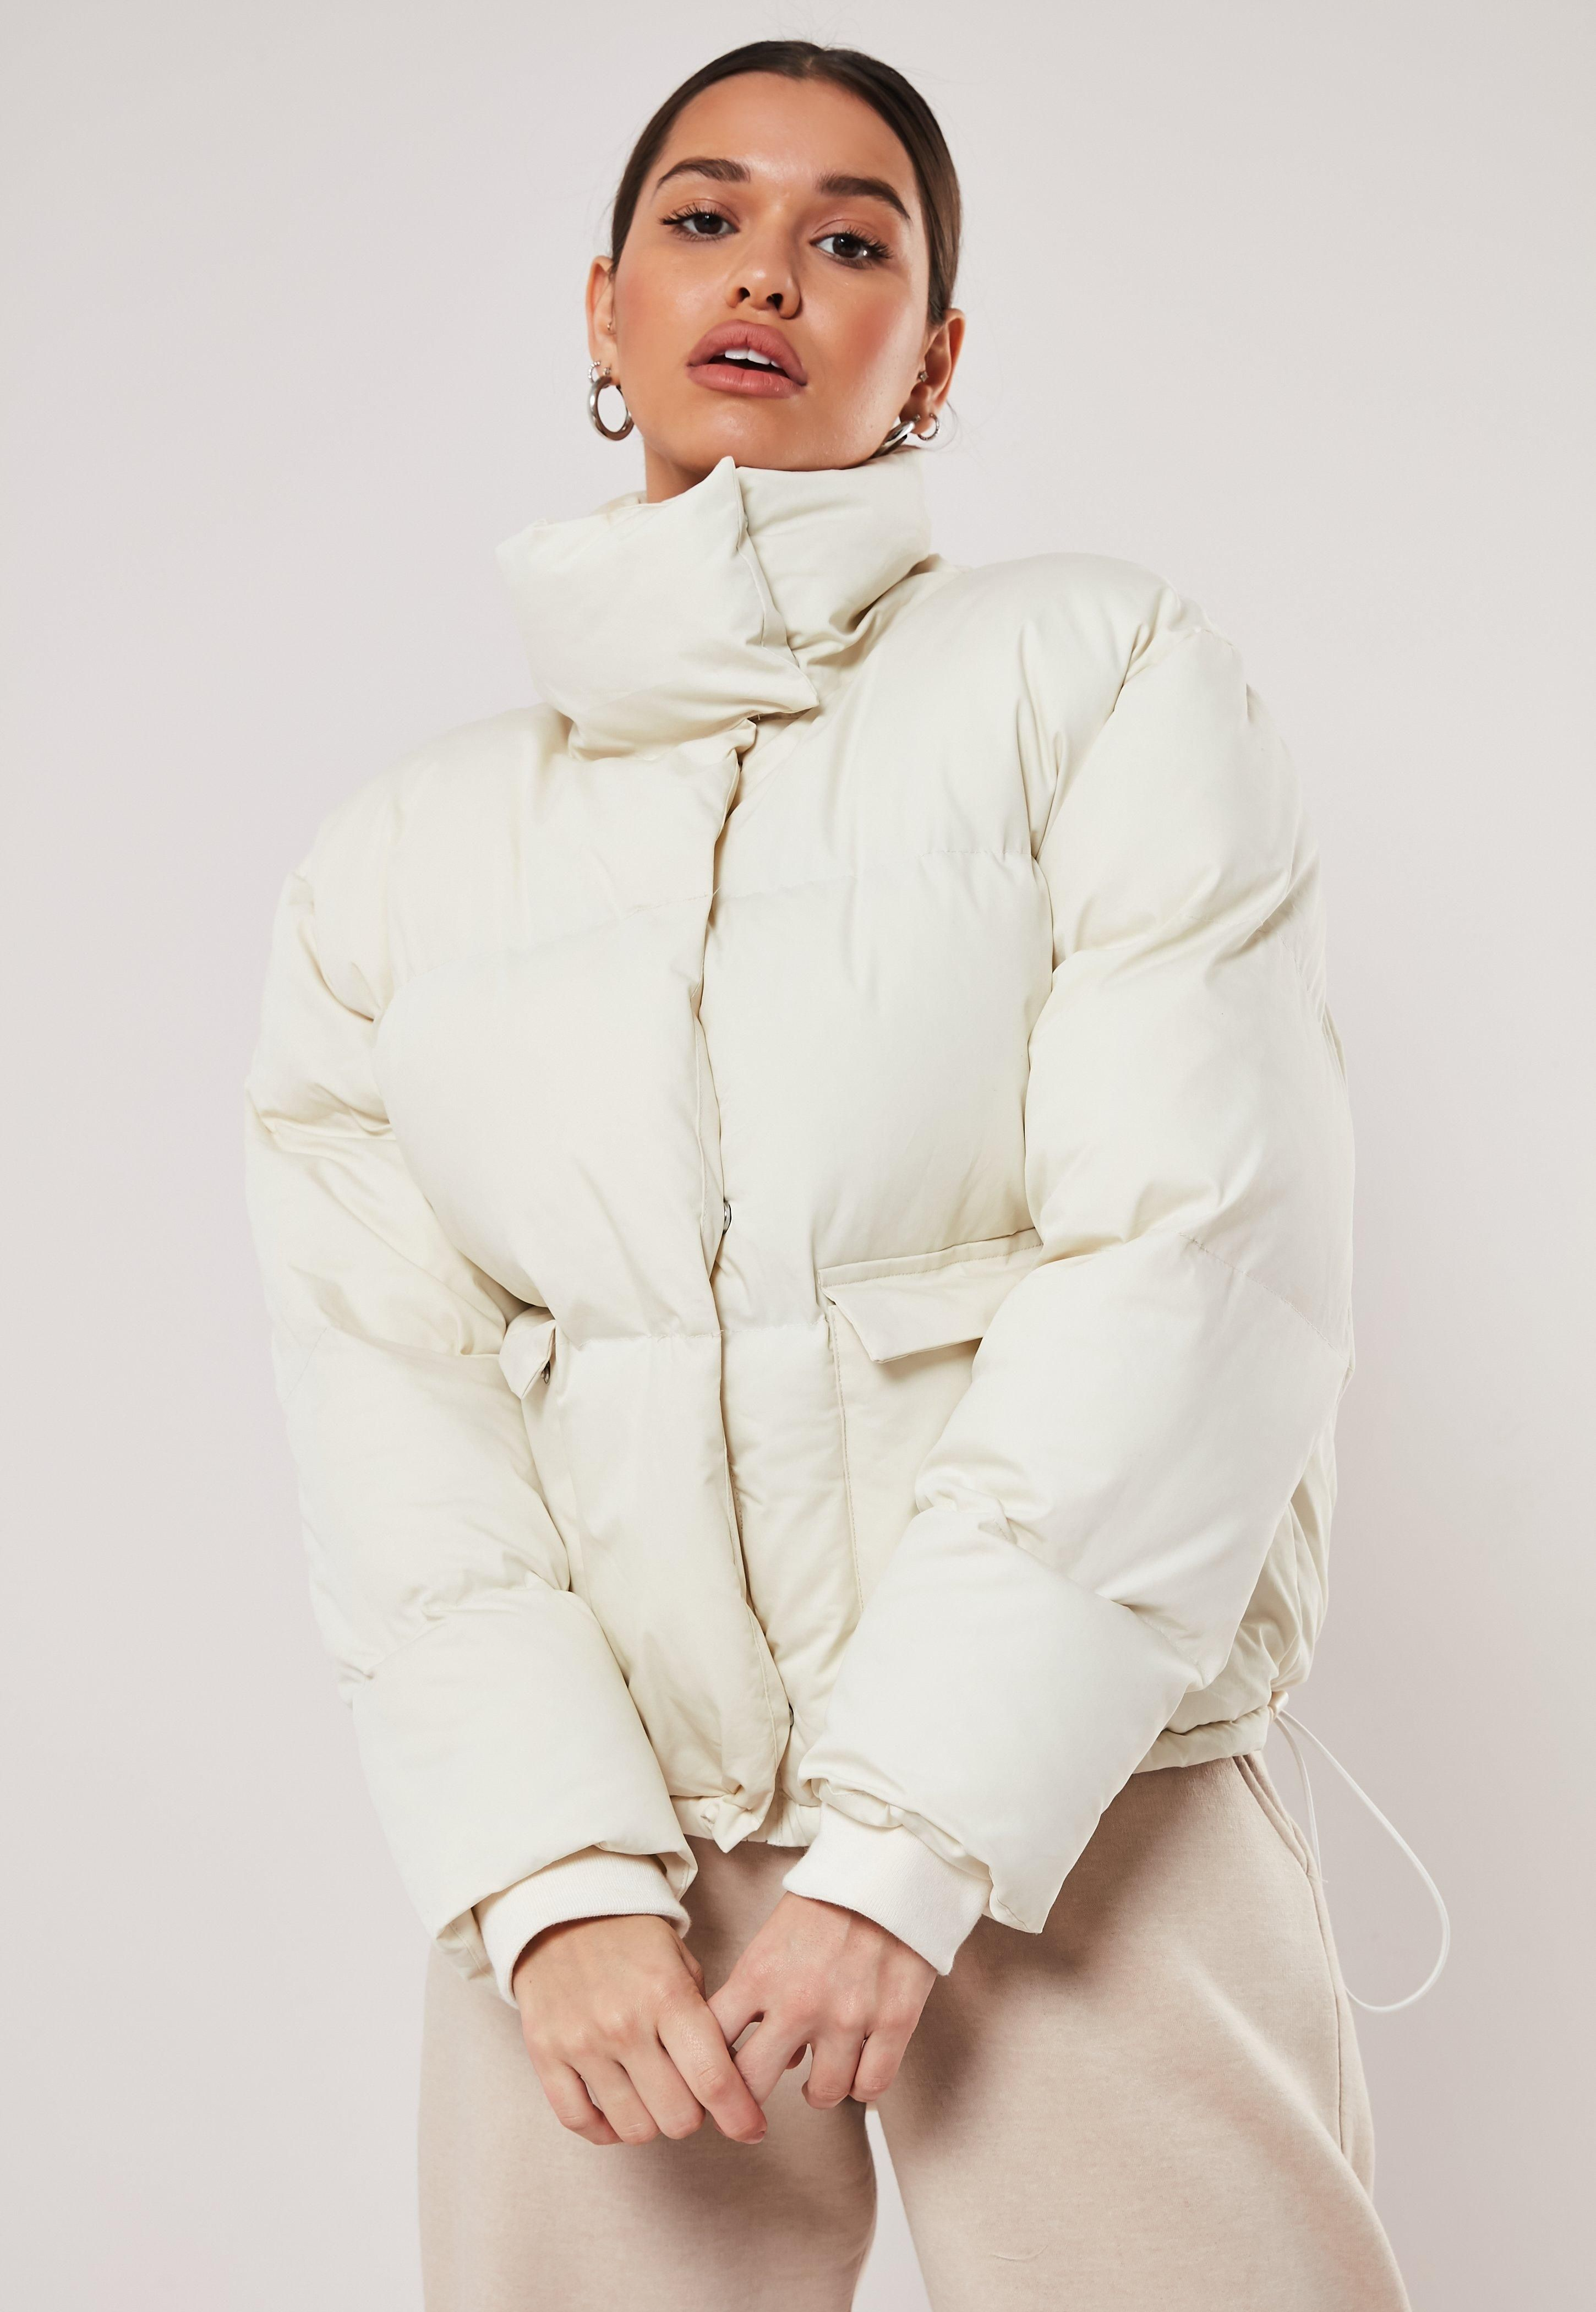 Cream Ultimate Puffer Jacket Sponsored Ultimate Paid Cream Jacket White Puffer Jacket White Puffer Puffer Jacket Outfit [ 4200 x 2900 Pixel ]